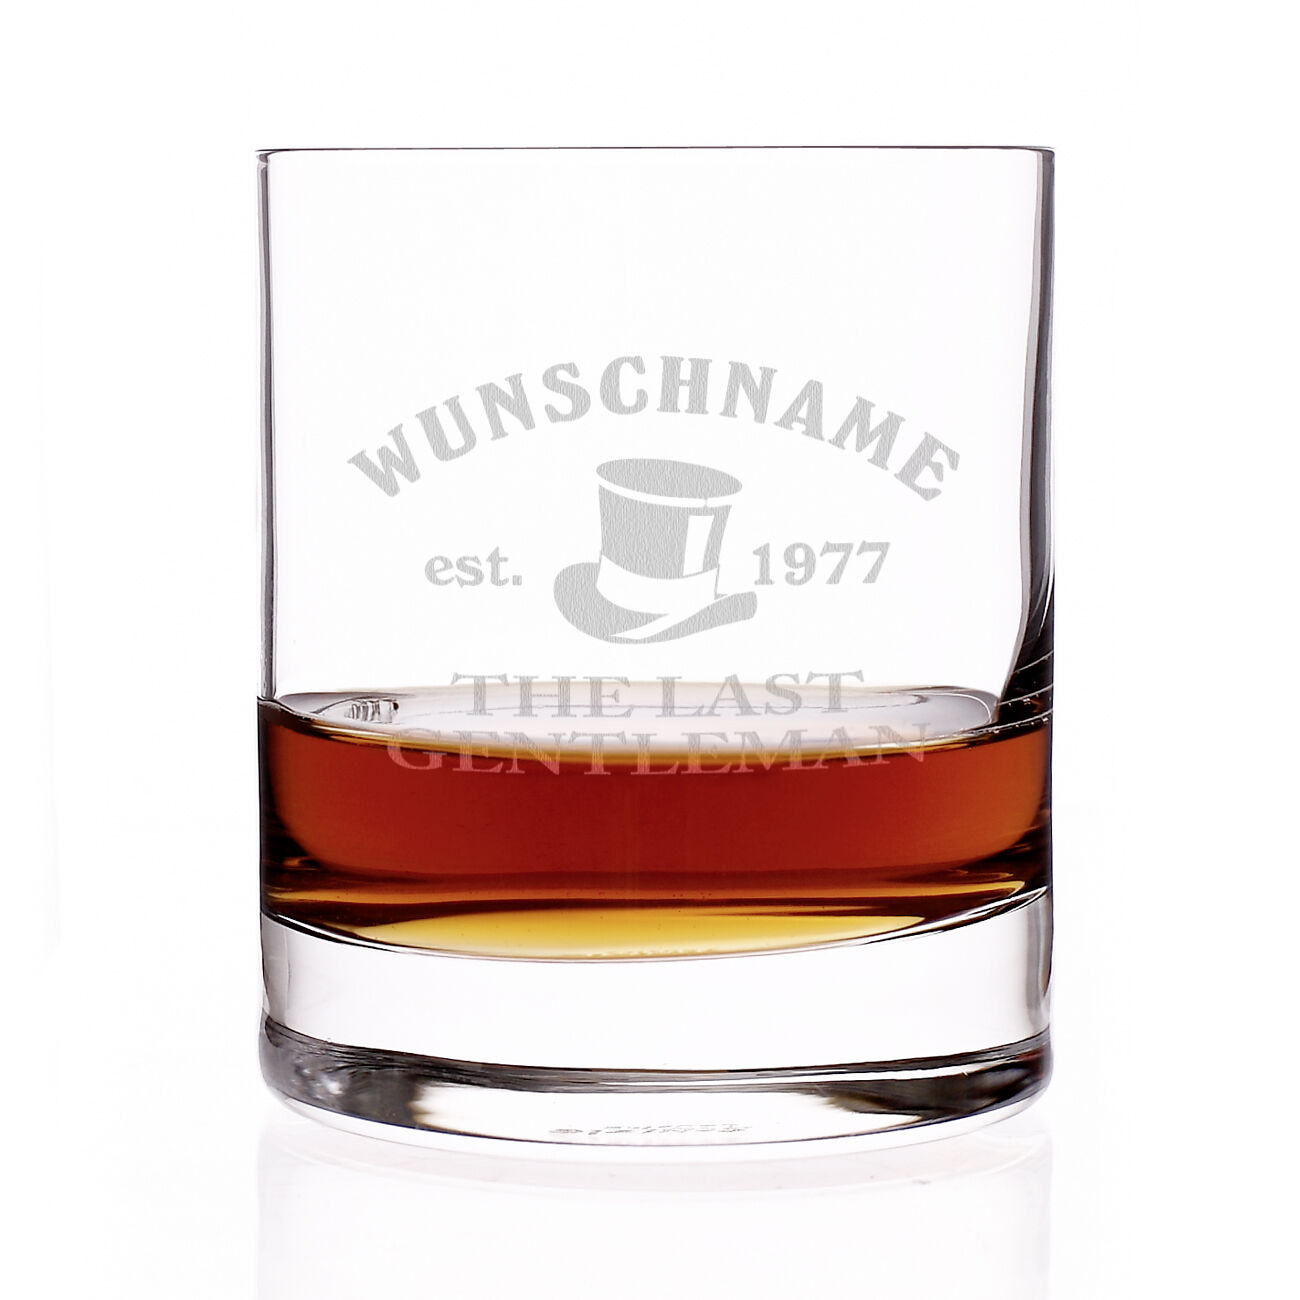 Glastisch Mit New York Motiv Stölzle New York Bar Whisky Glas Mit Gratis Gravur Motive